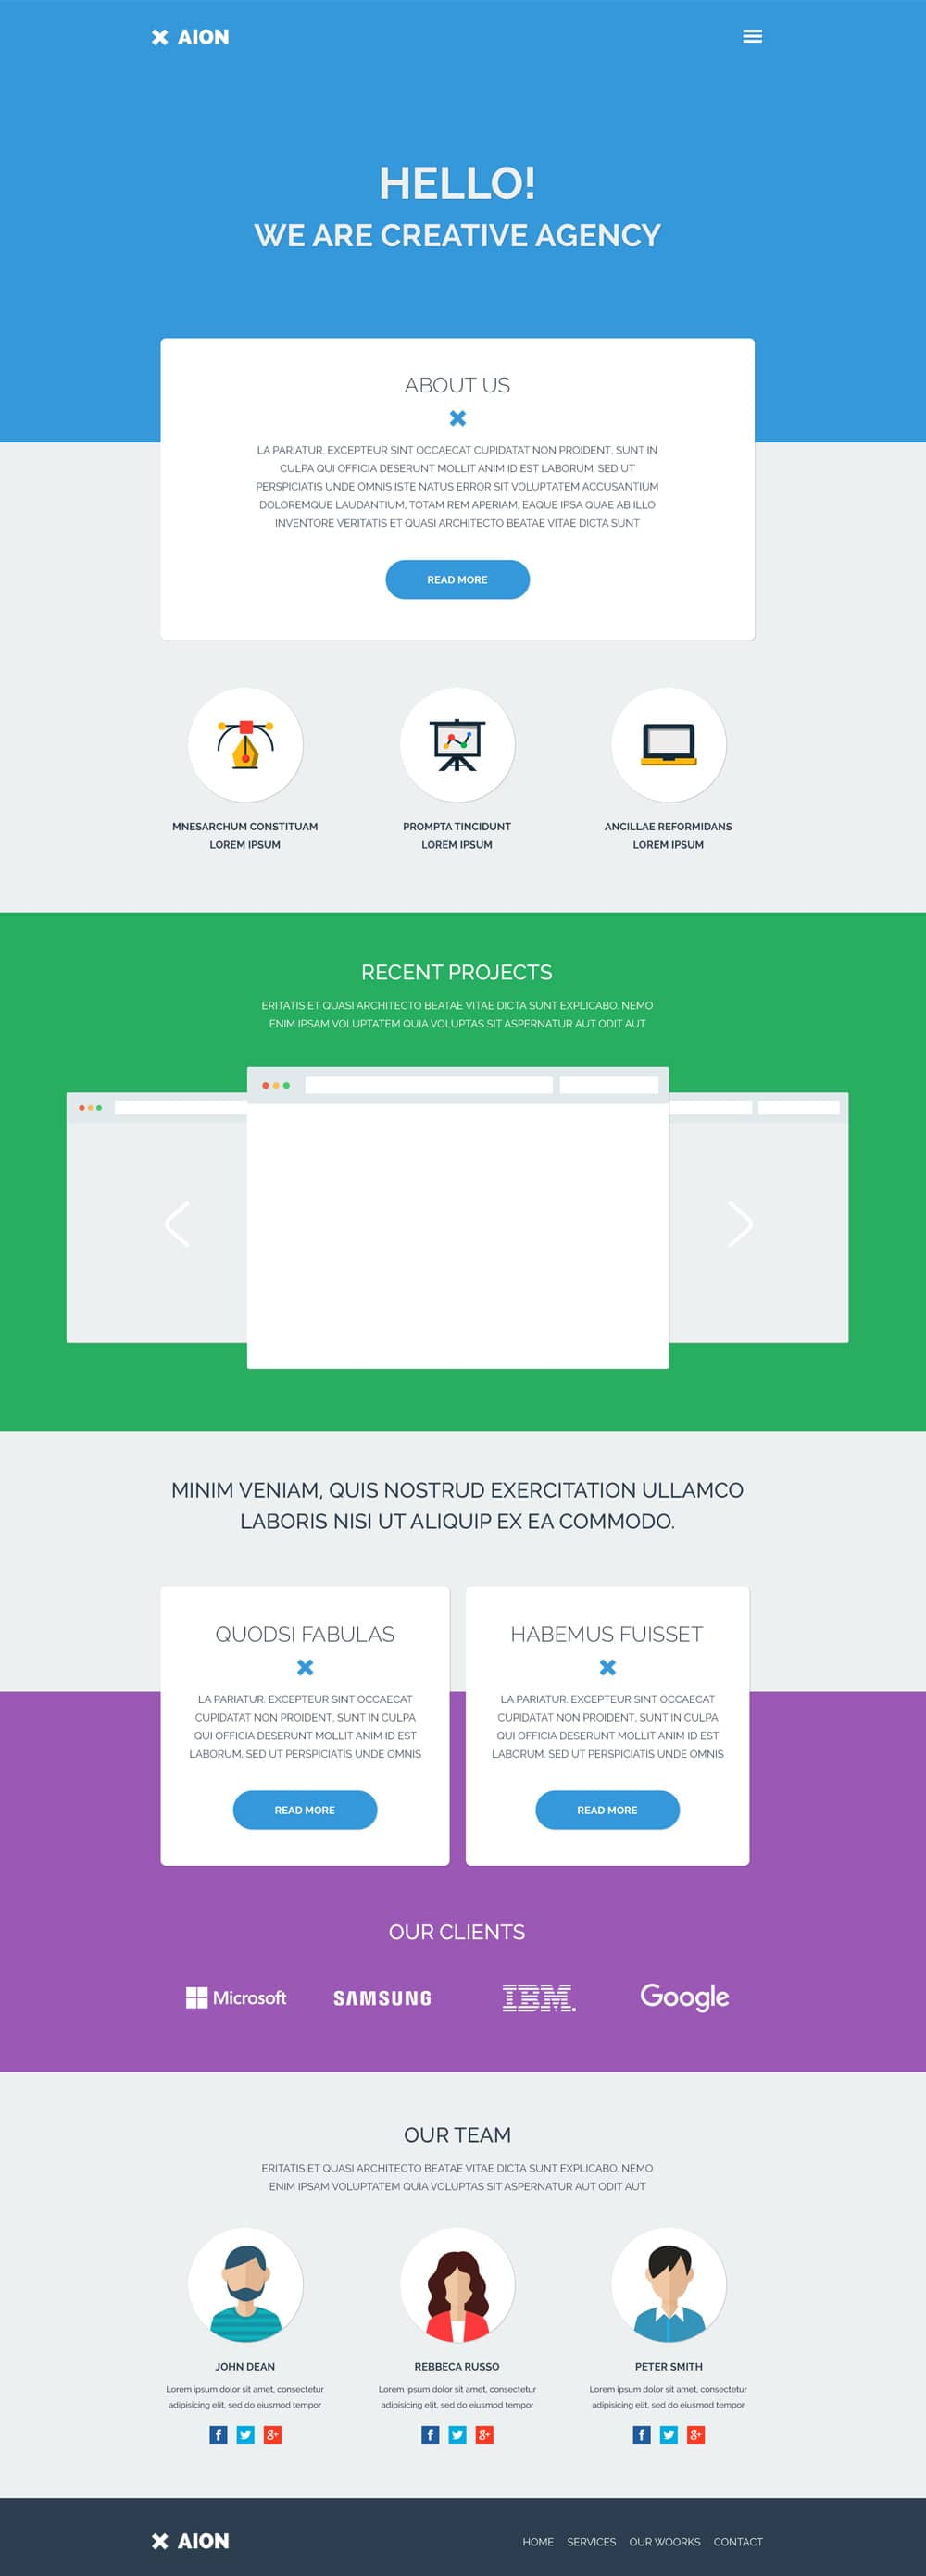 Free corporate and business web templates psd aion free web template psd wajeb Gallery